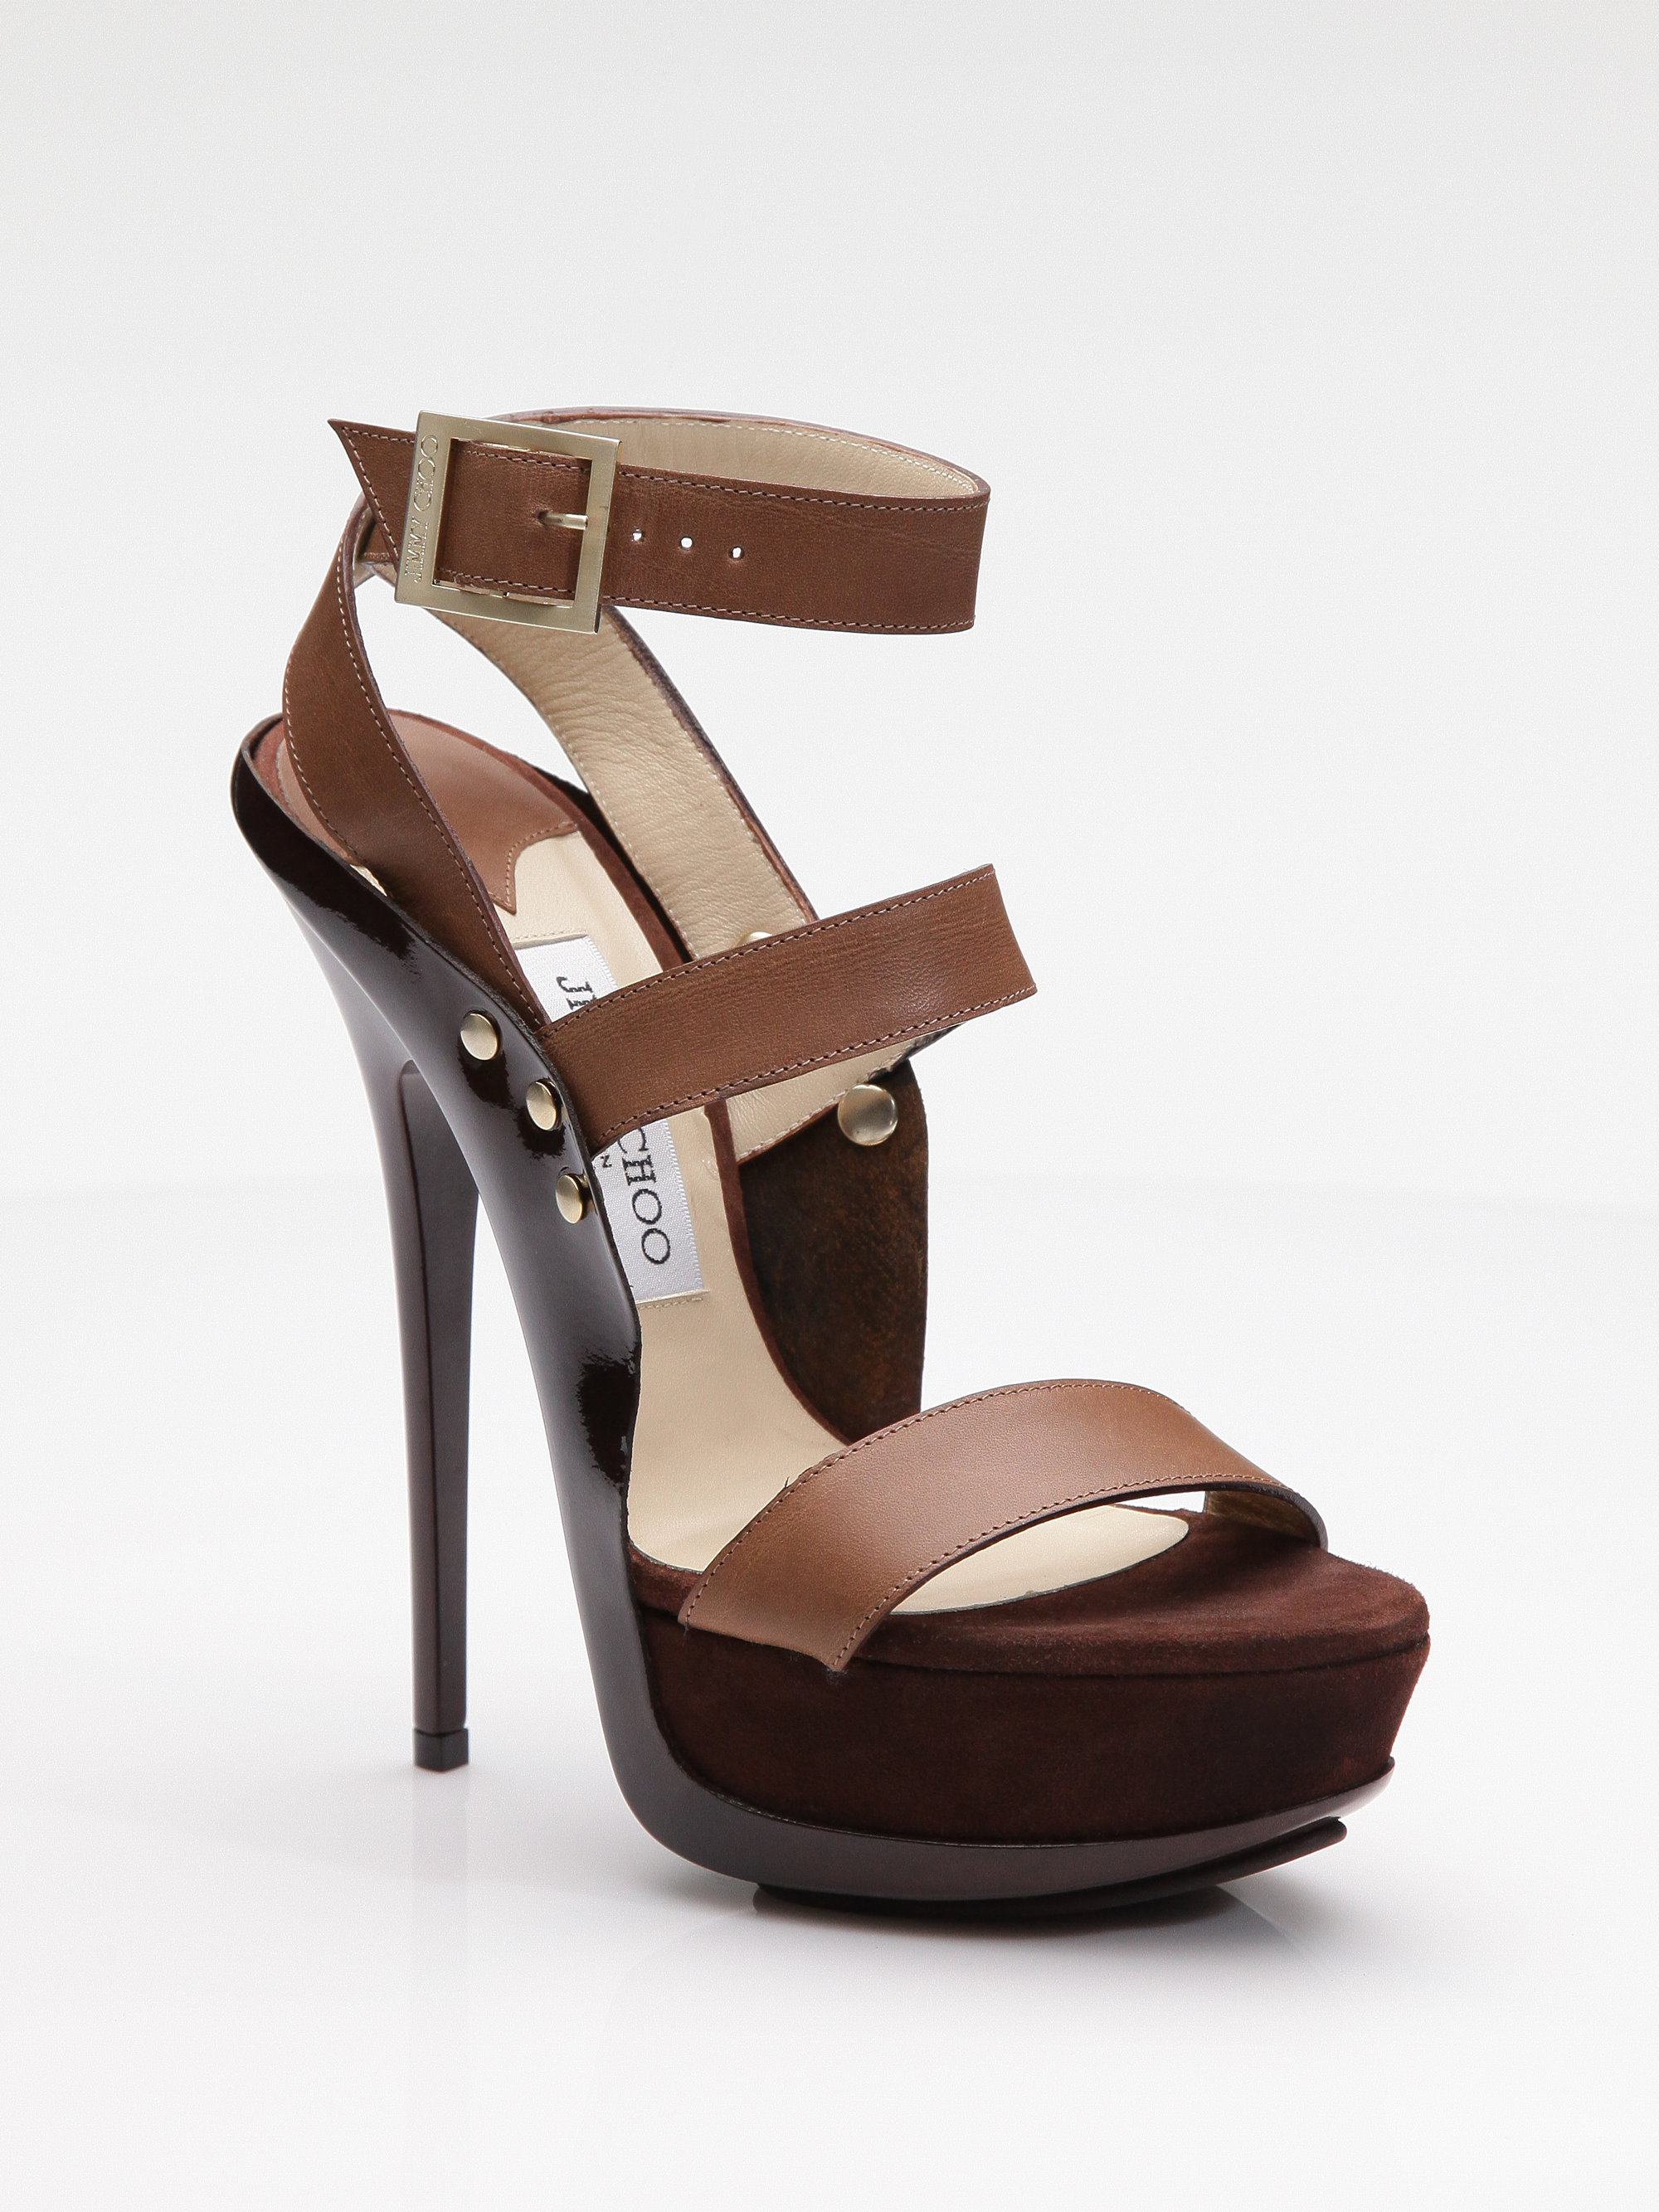 5673a55c0da Lyst - Jimmy Choo Halley Platform Sandals in Brown